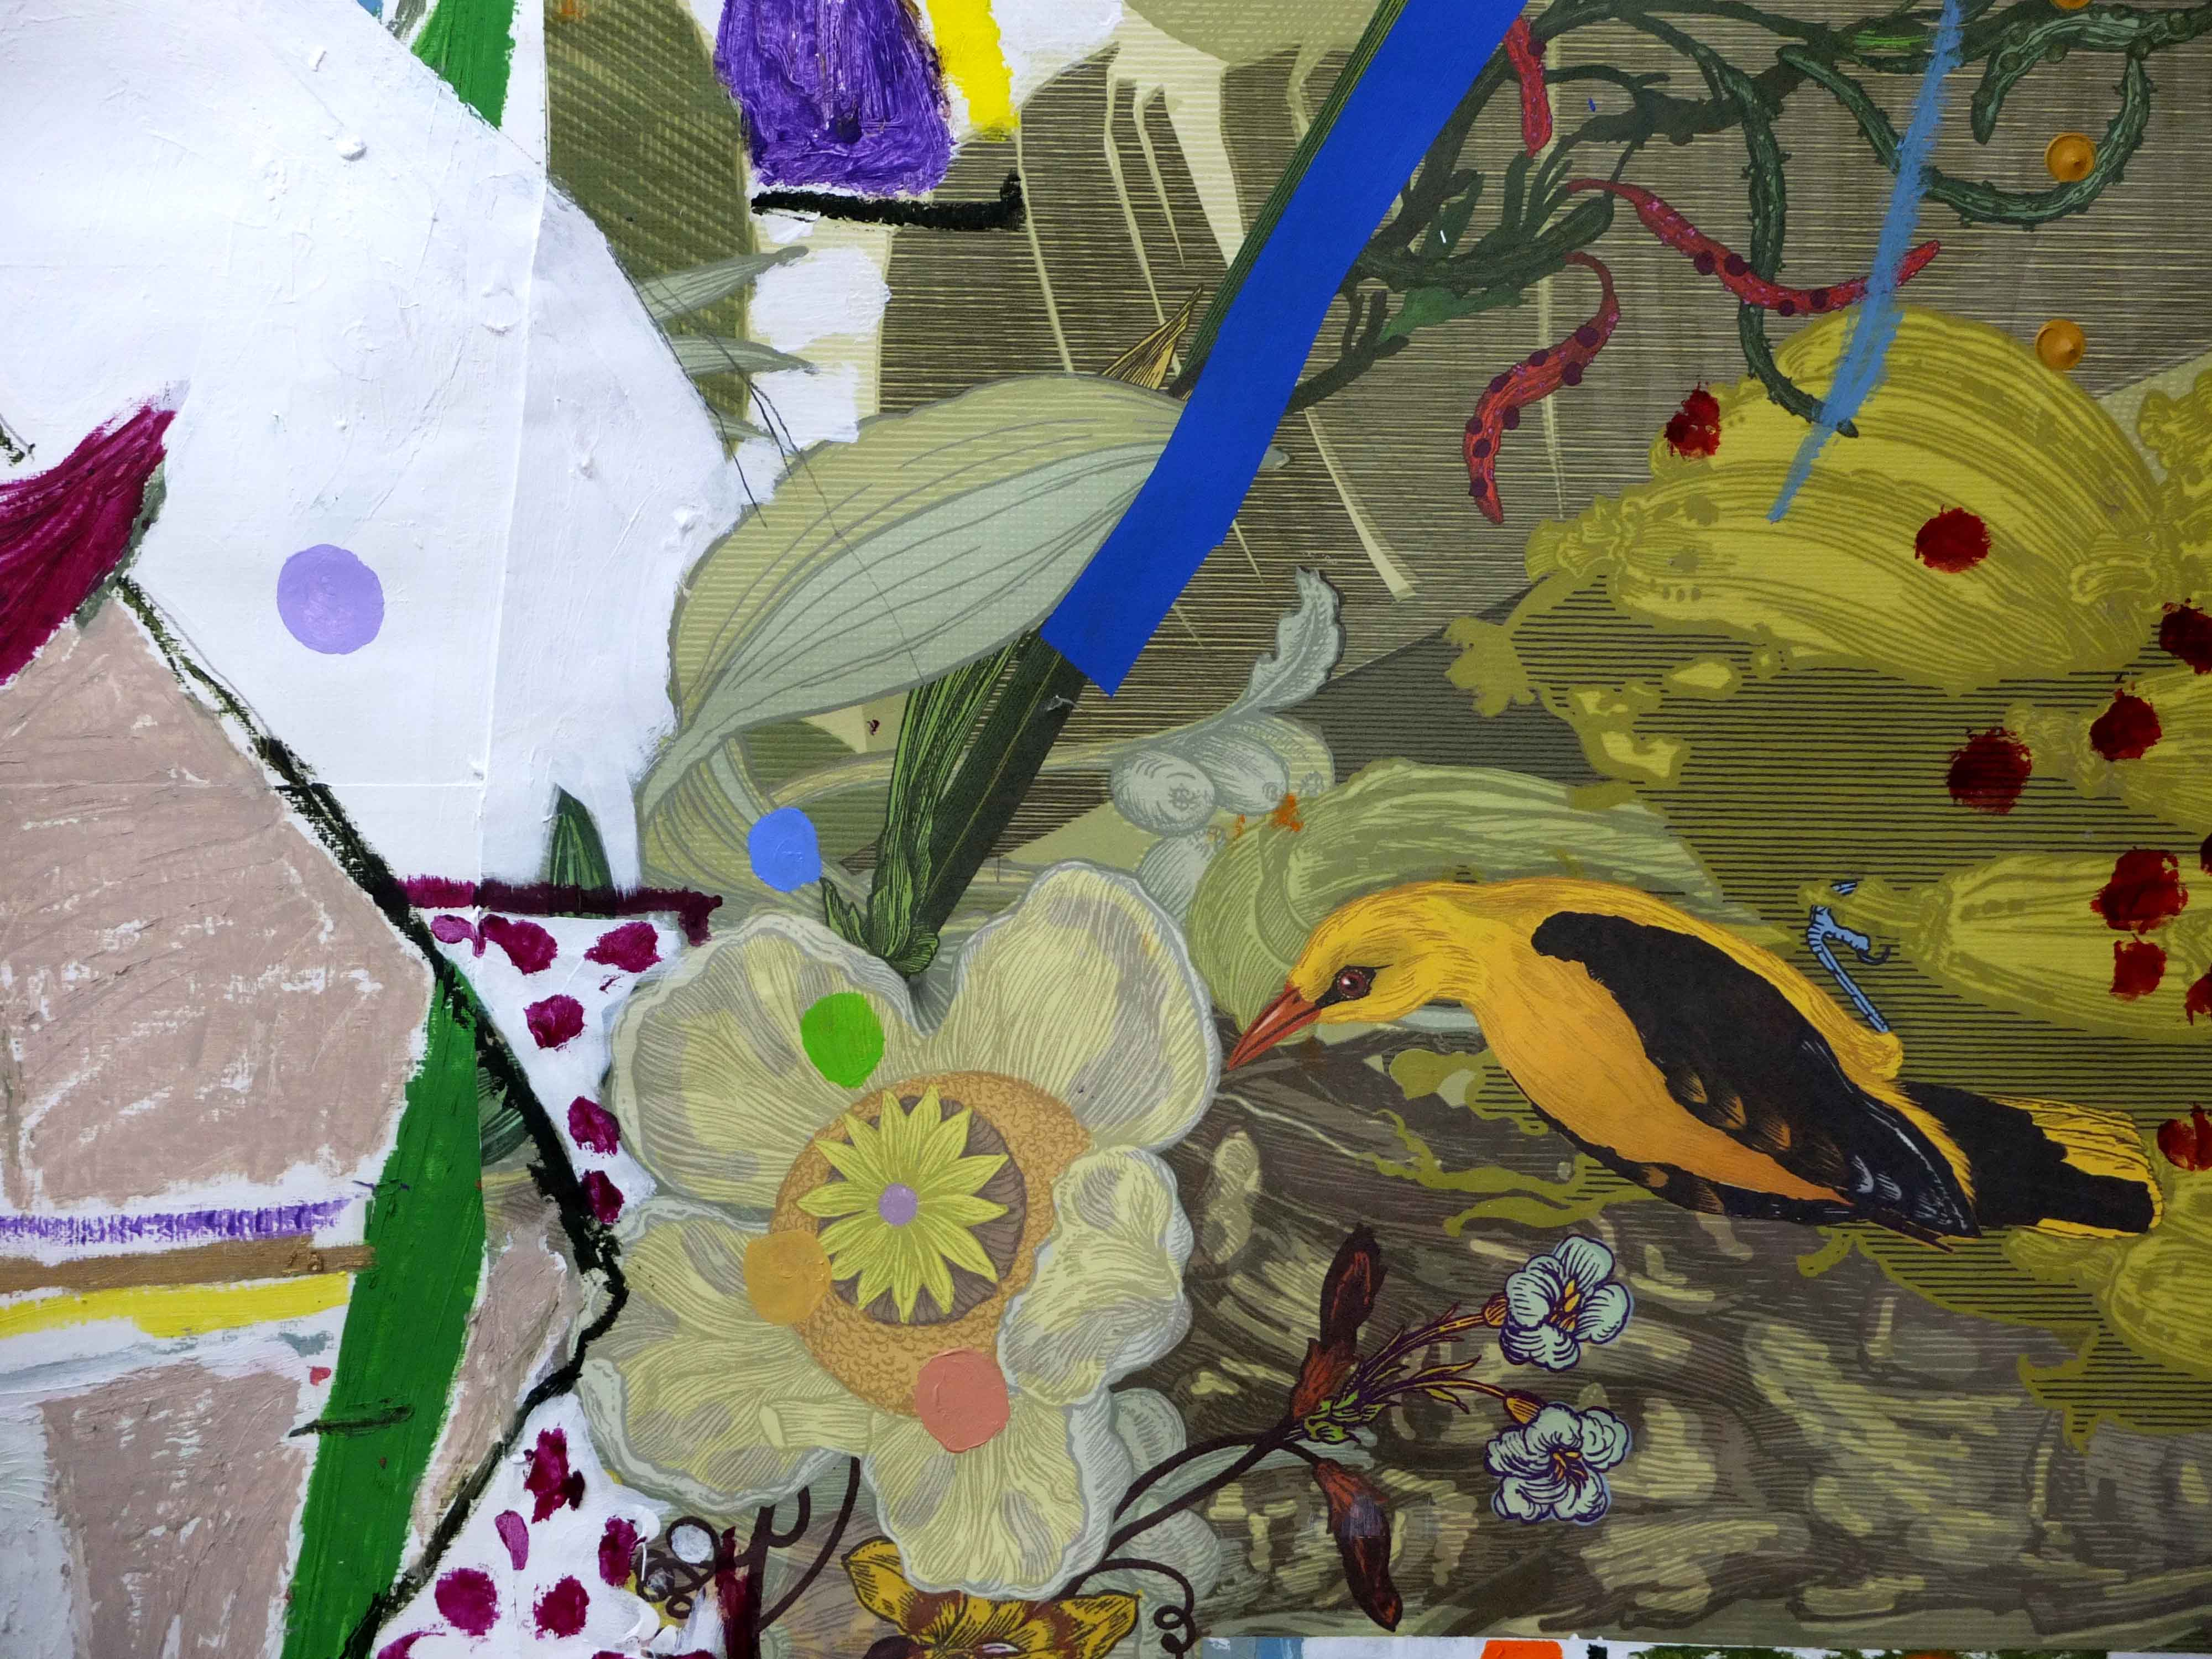 Birdsong, 2014 (detail 2) By Jonathan McCree Acrylic, oil and oil stick on collaged Timorous Beasties wallpaper